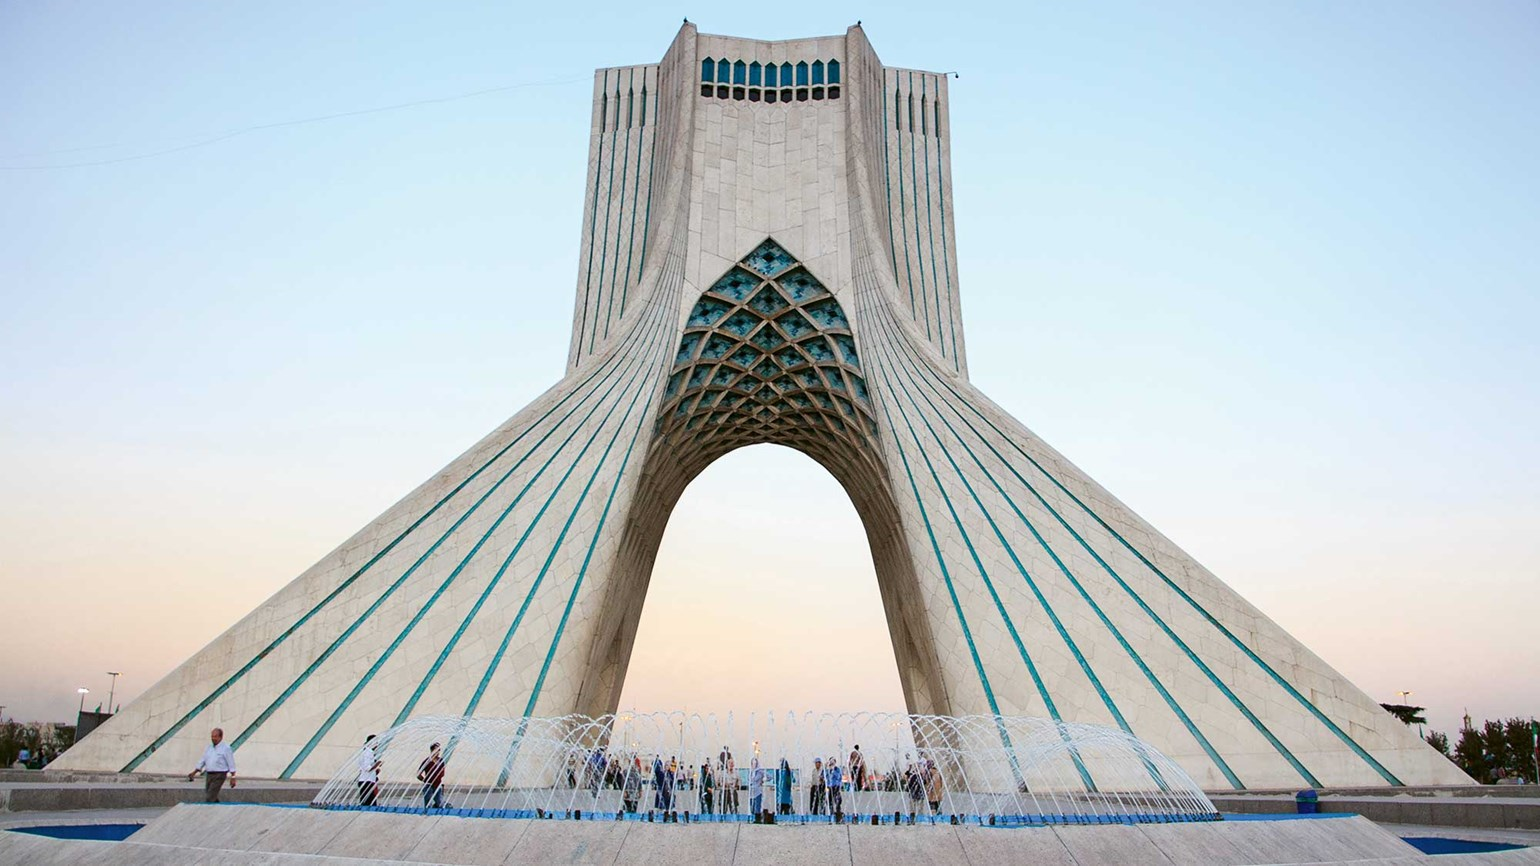 Tour operators in waiting mode on Iran